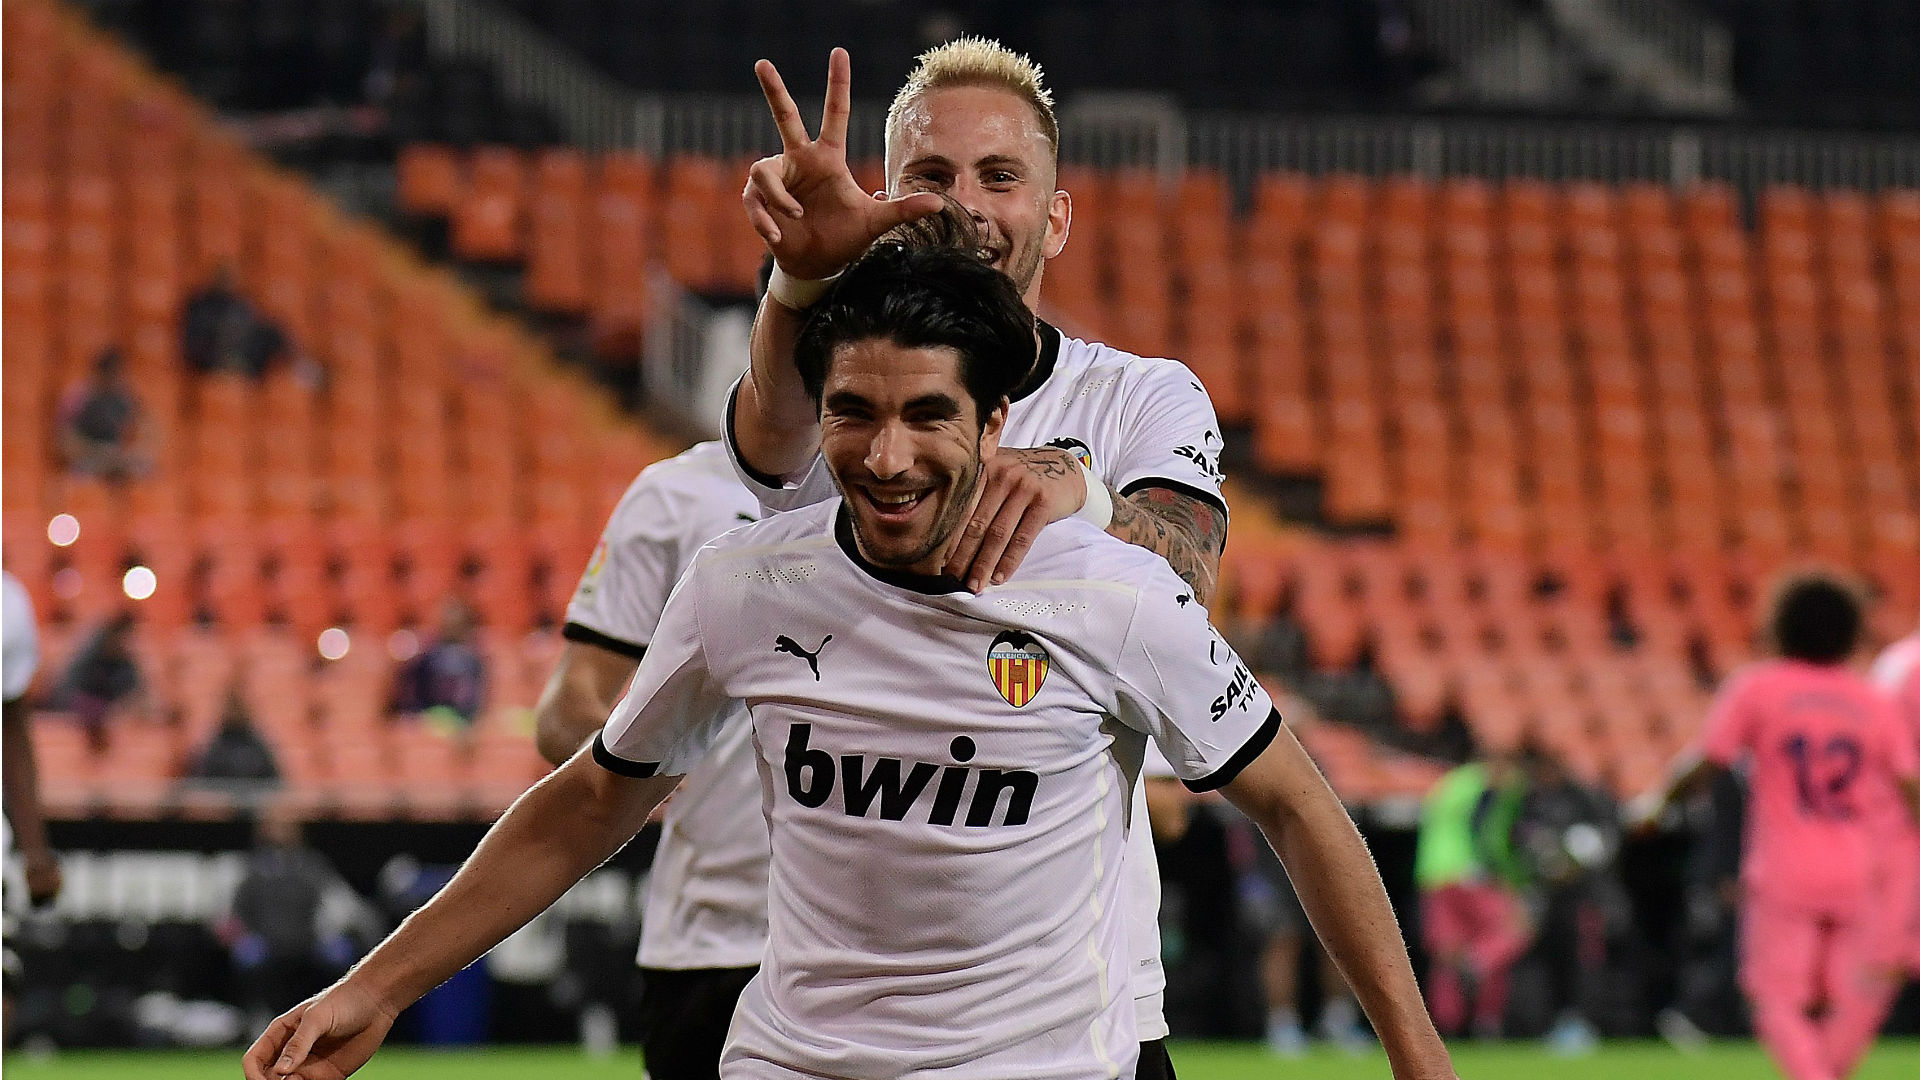 Valencia 4-1 Real Madrid: Soler's hat-trick of penalties tumbles woeful Blancos